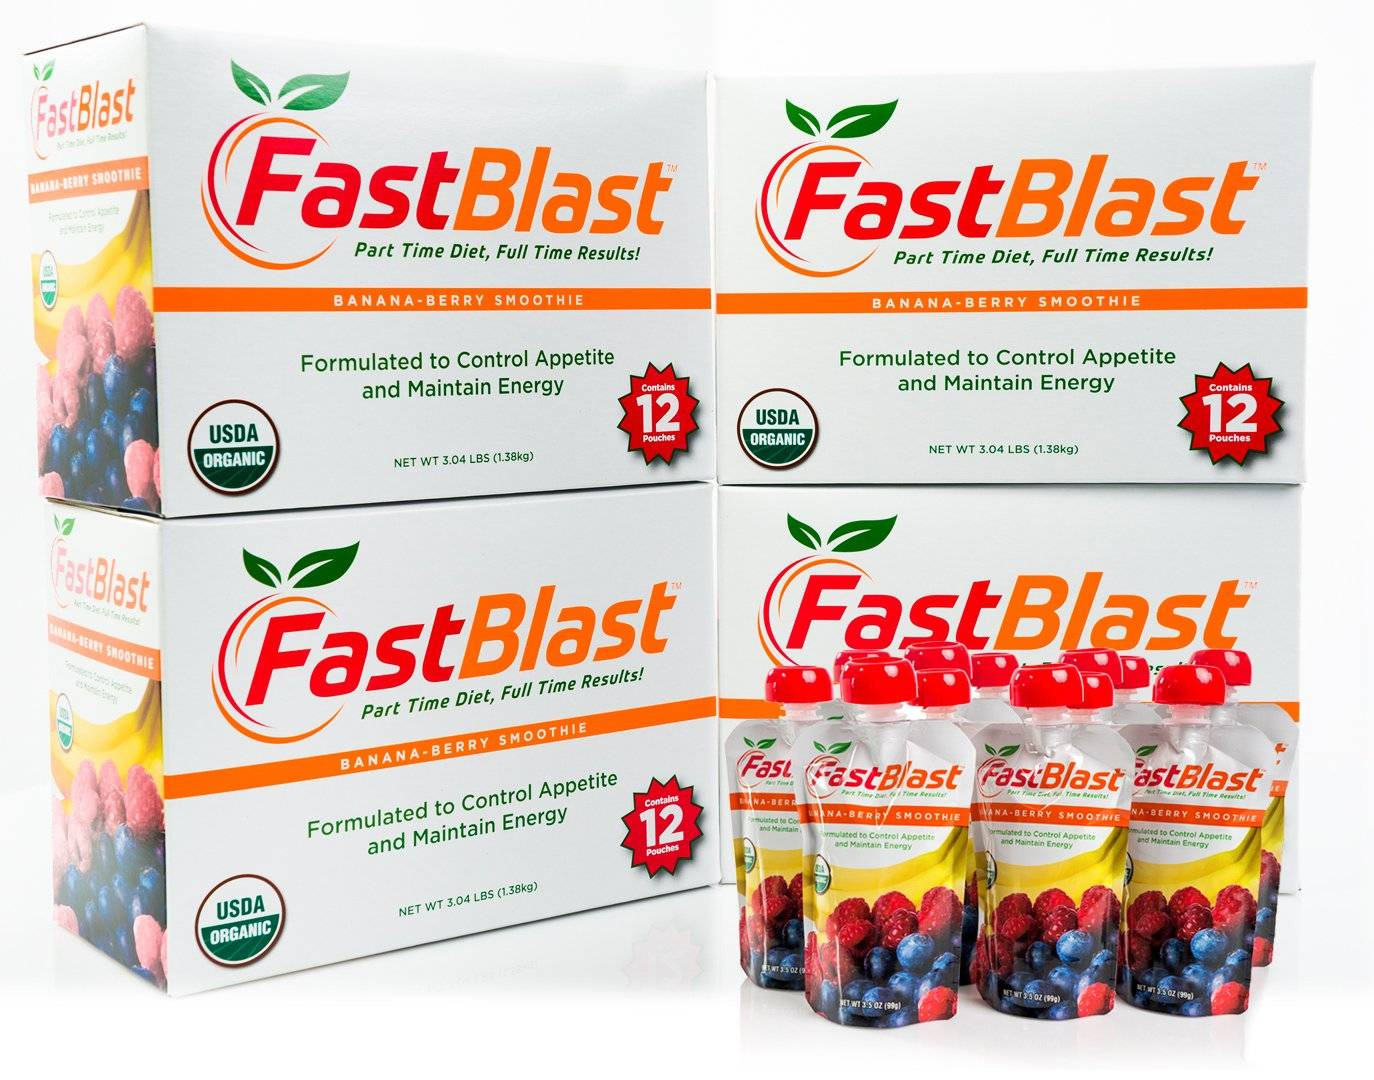 fastblast smoothies come in convienient pouches you can take with you anywhere